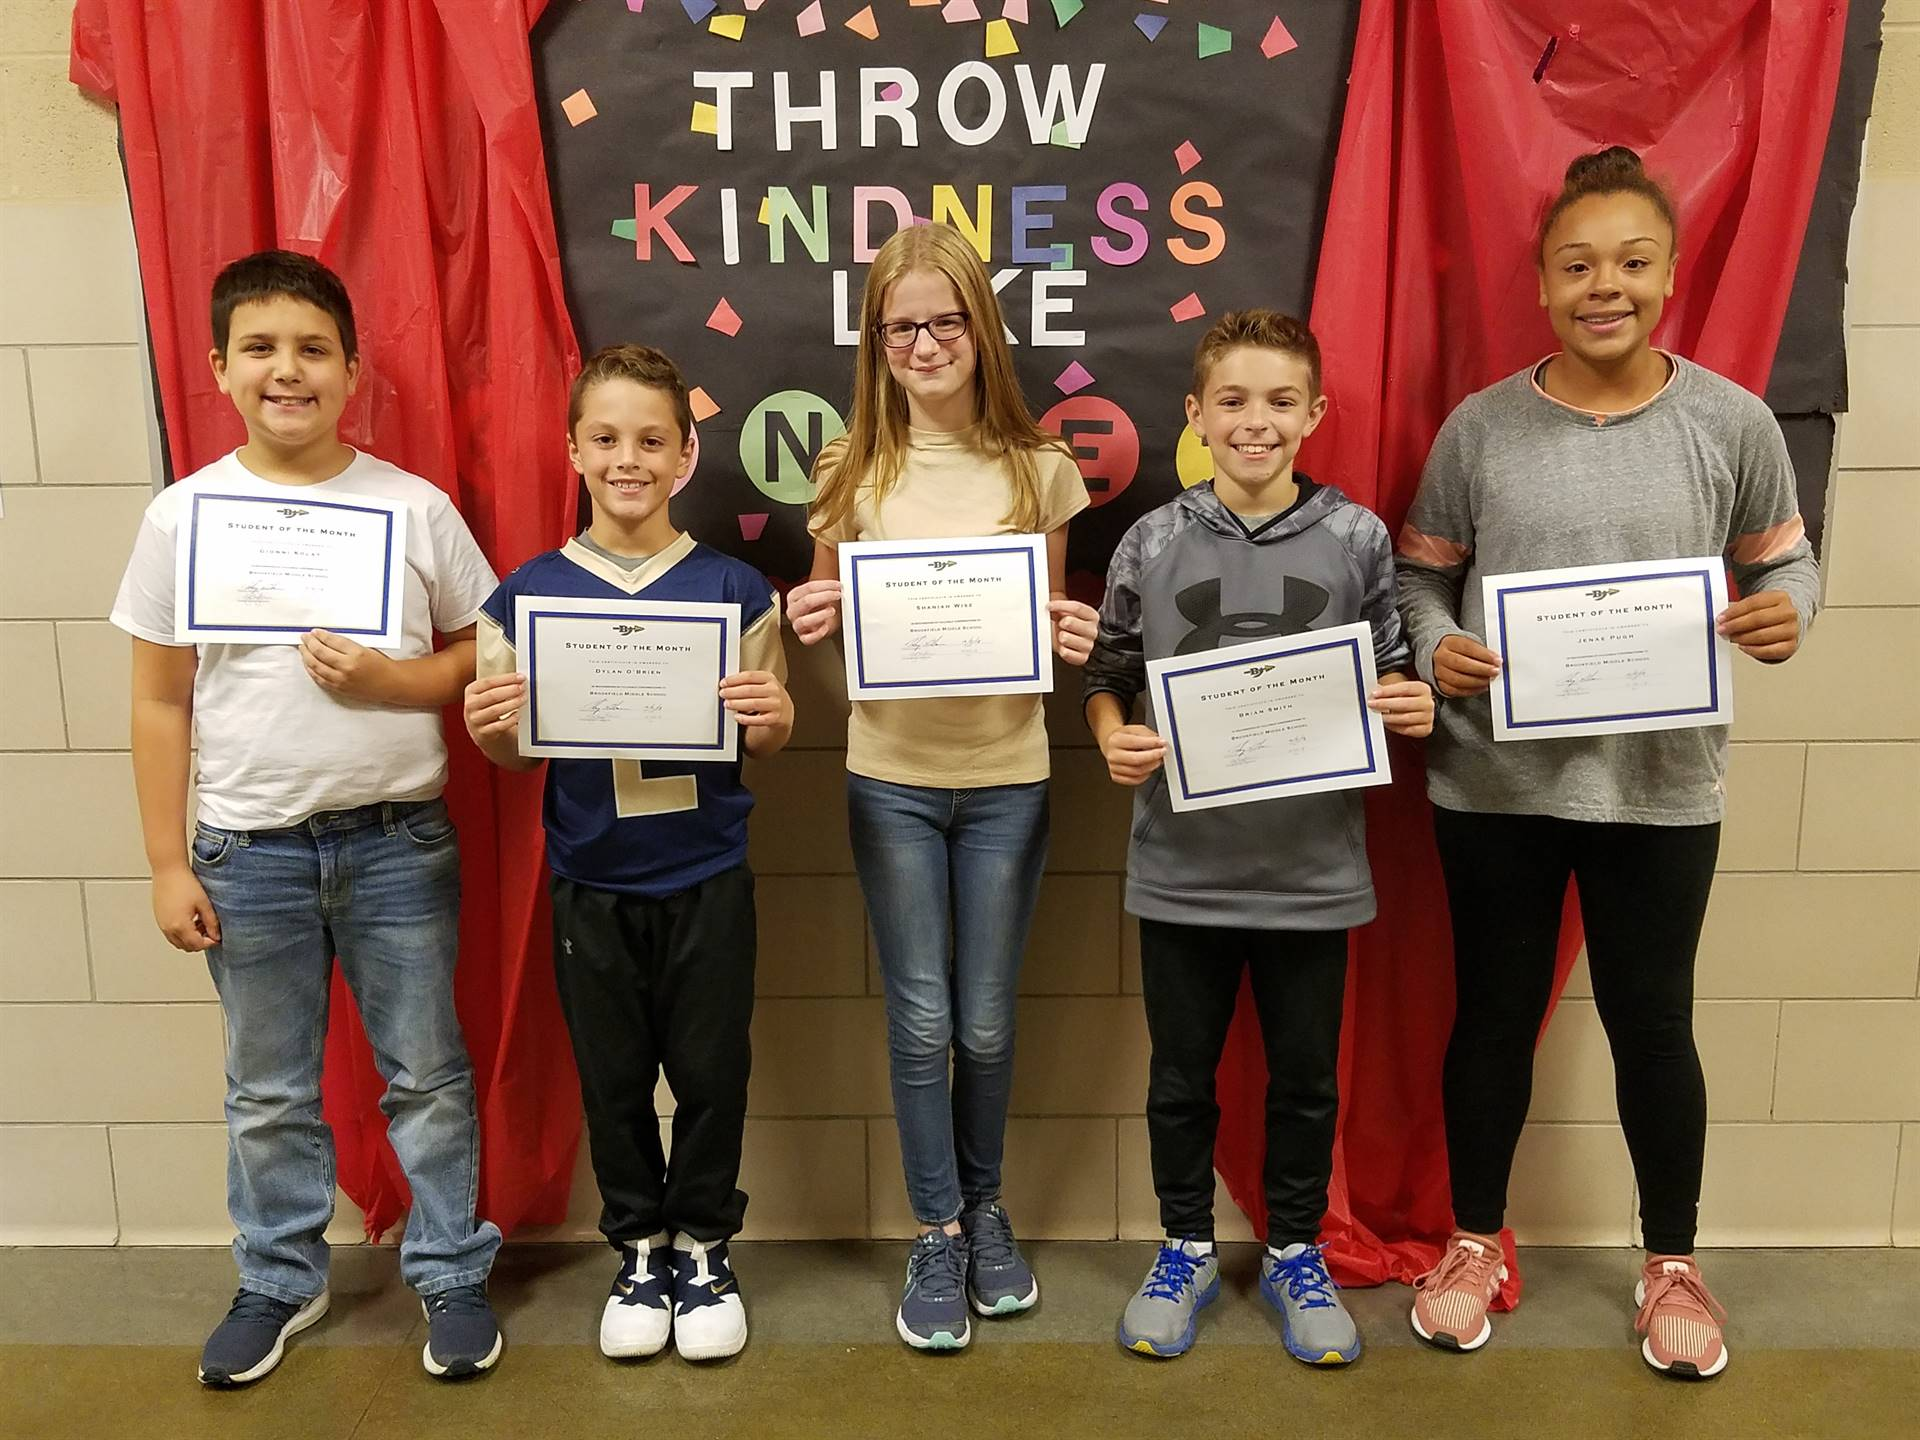 September Students of the Month: G. Kolat, D. O'Brien, G. Walker, B. Smith & J. Pugh